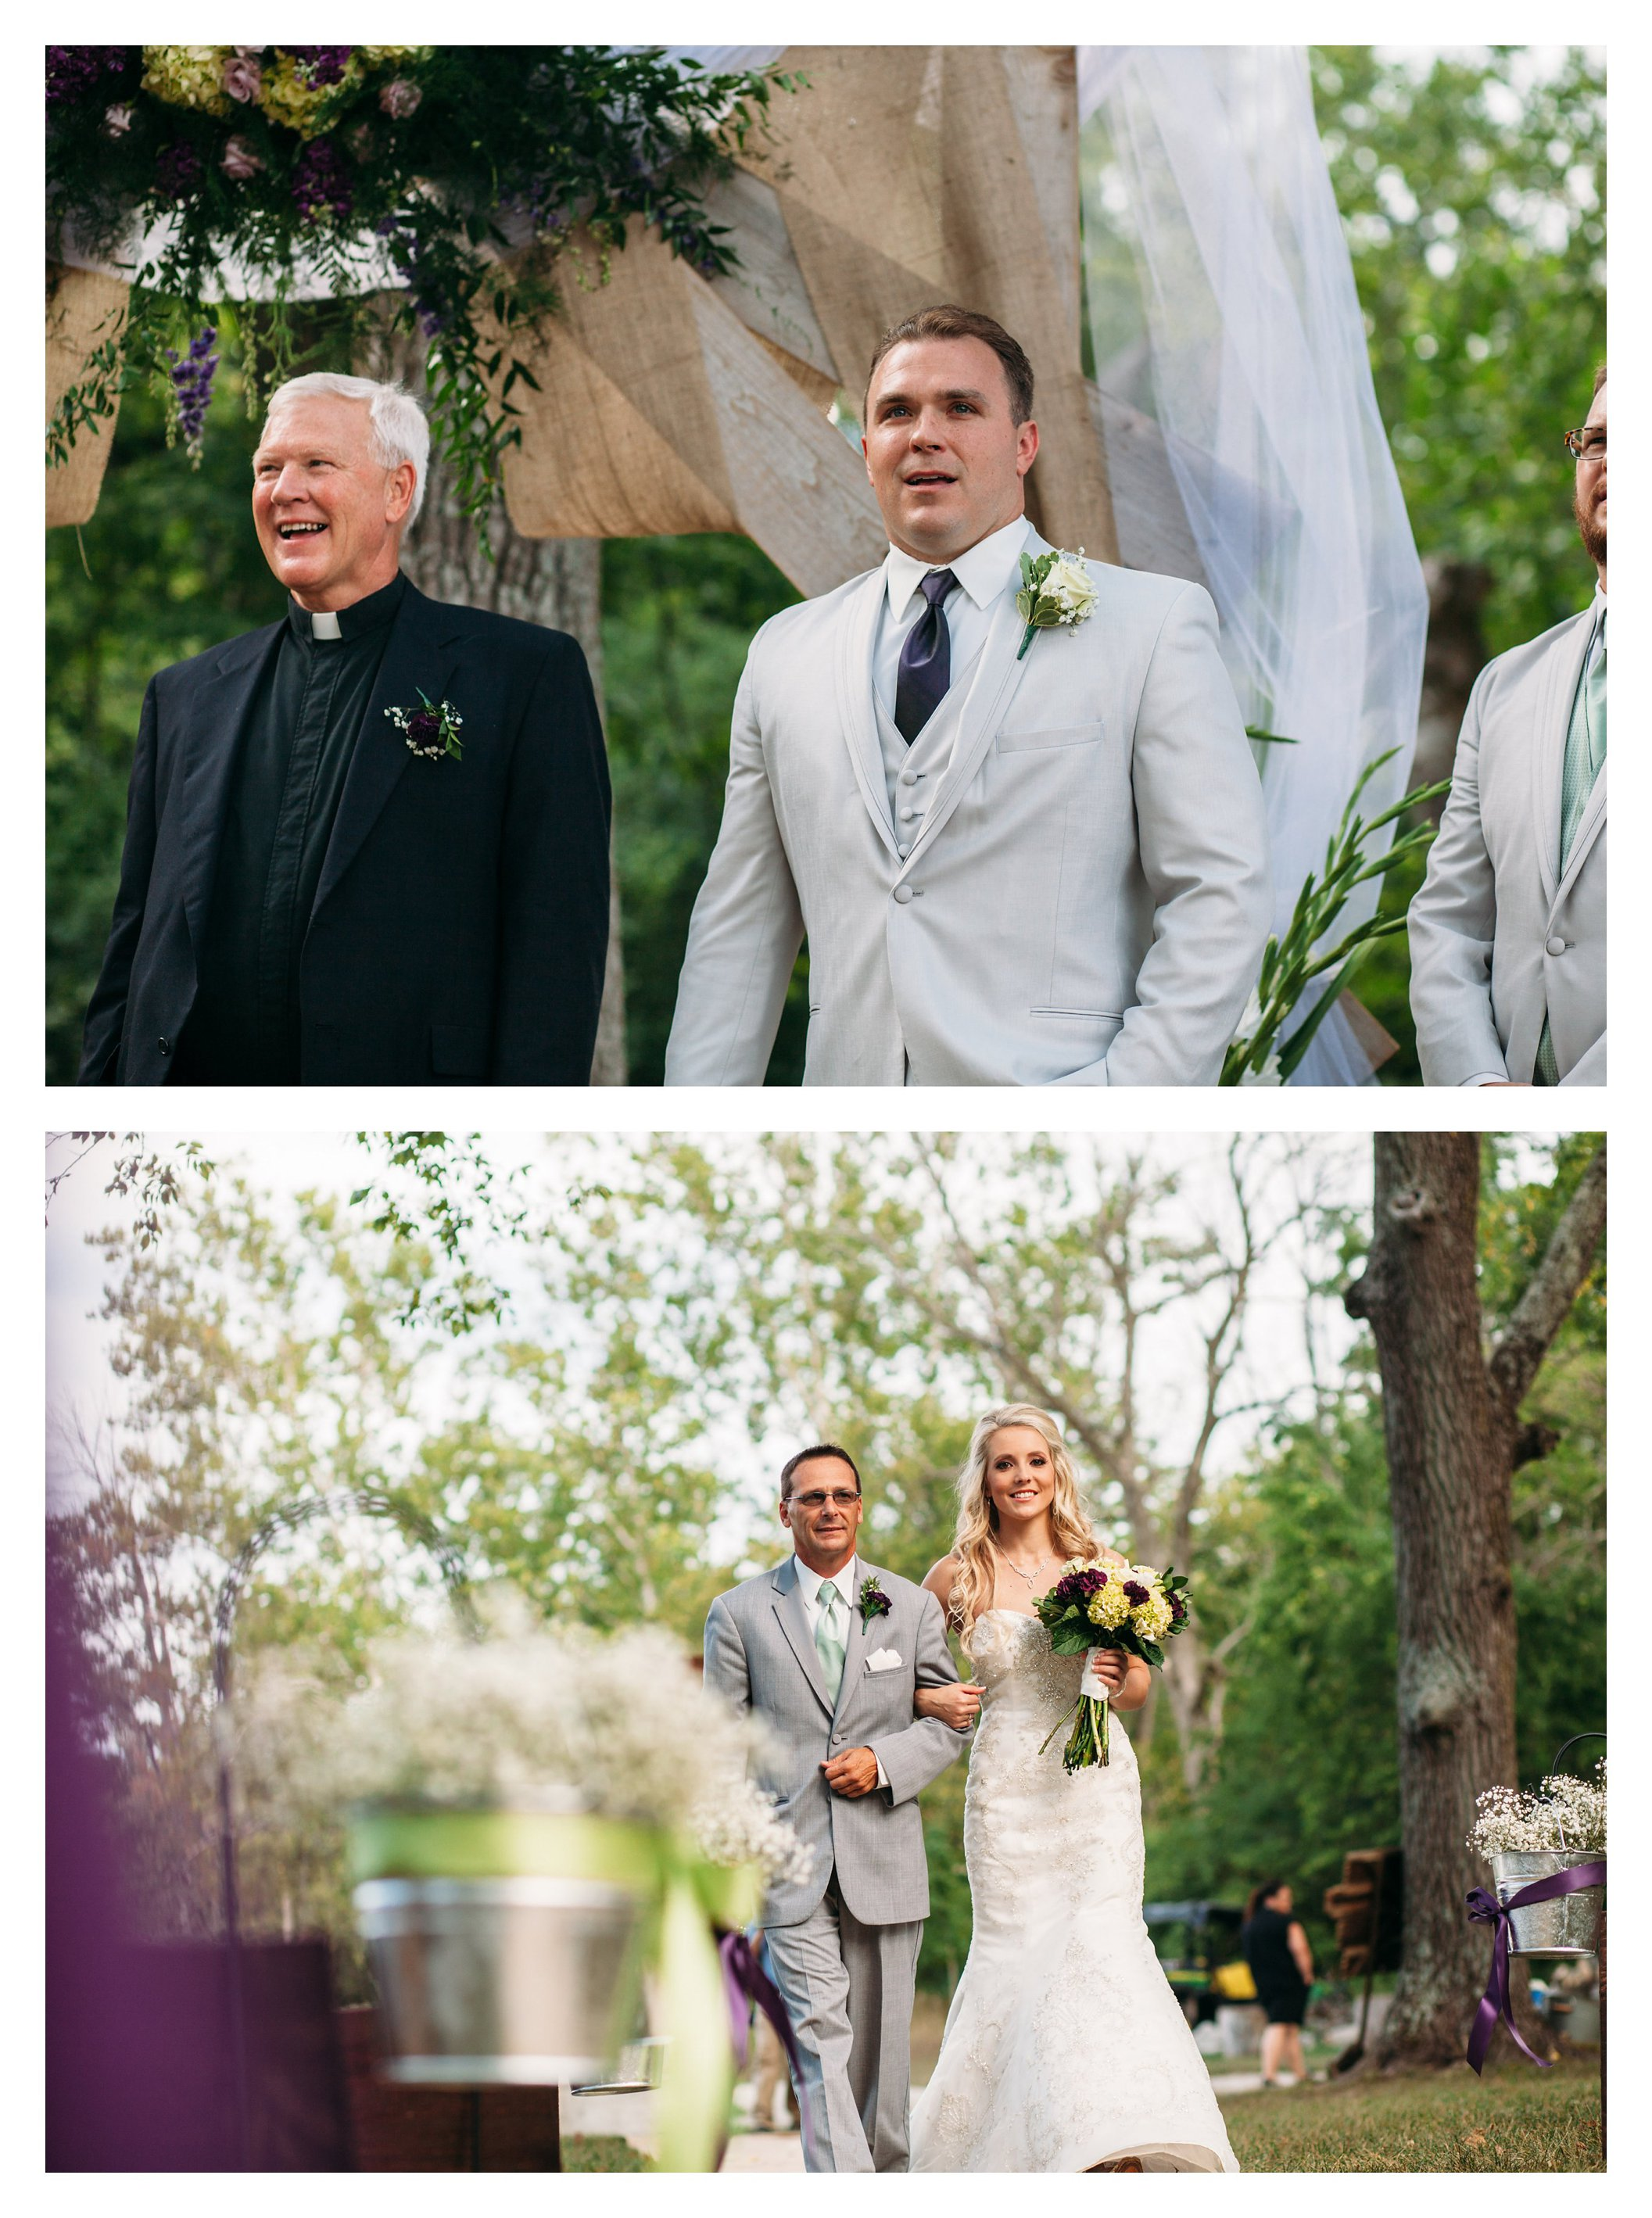 Dayton wedding photographer 3955